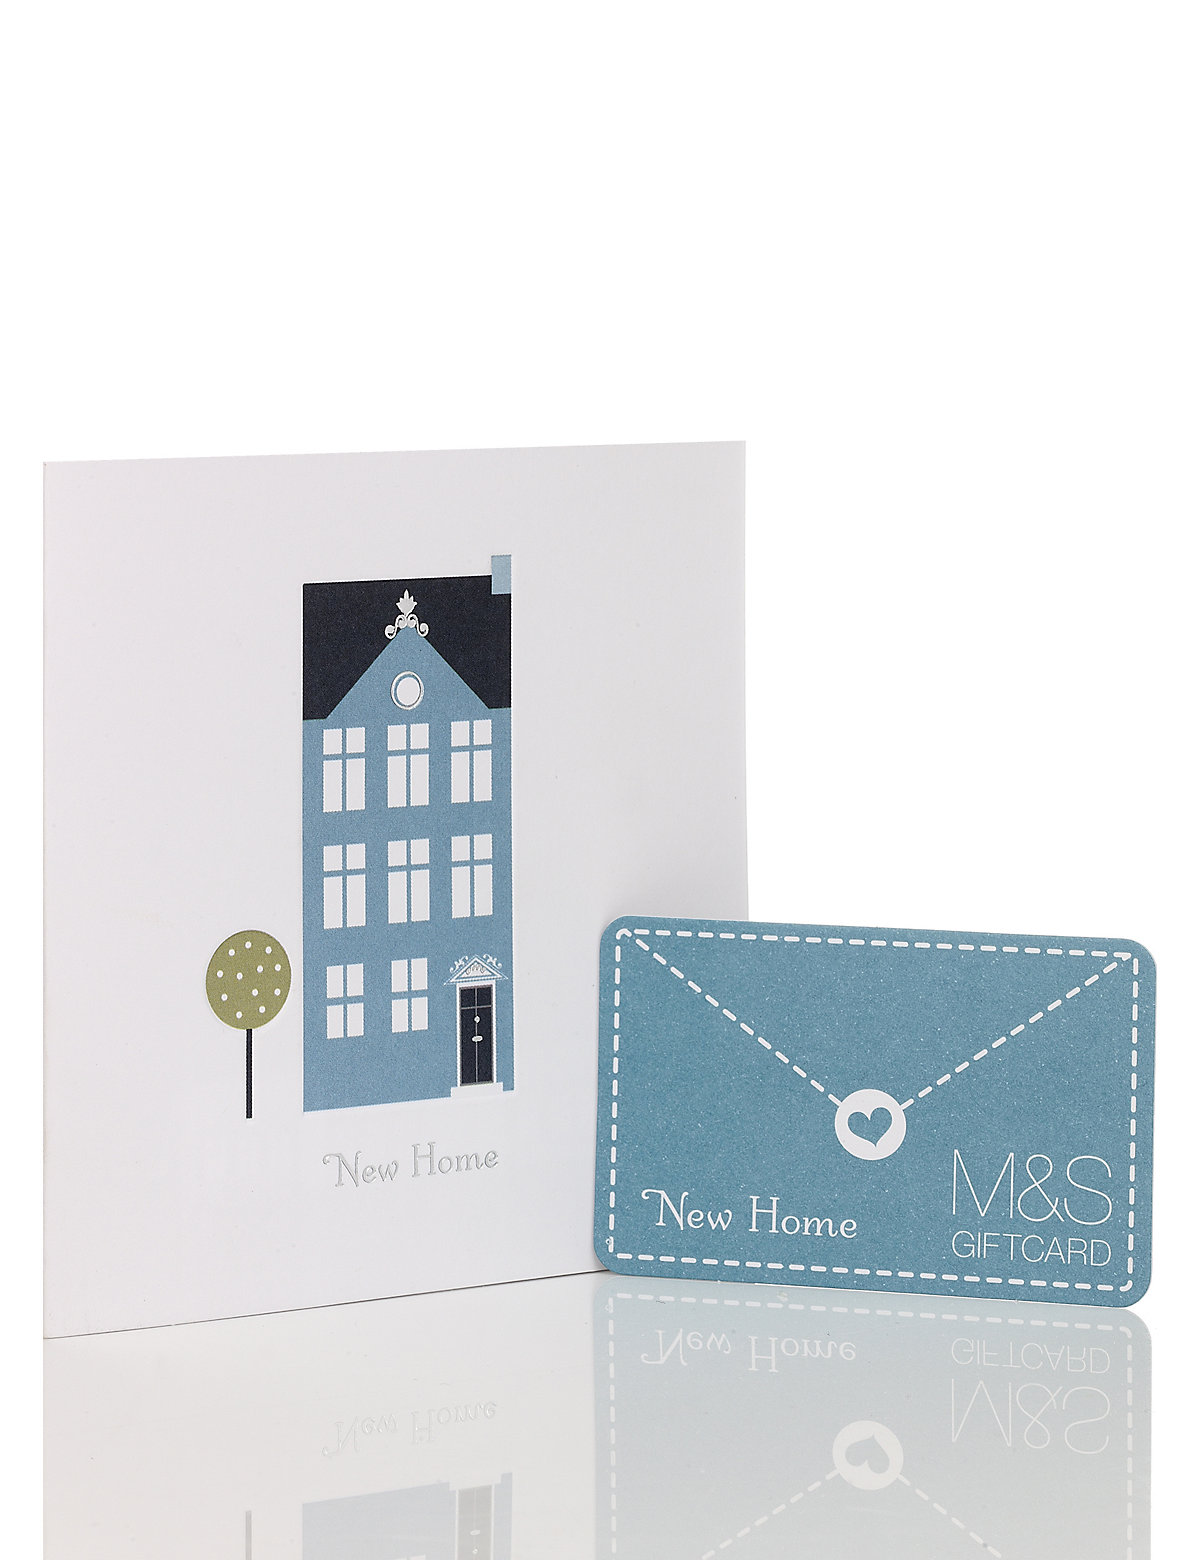 New Home Gift Card £1000